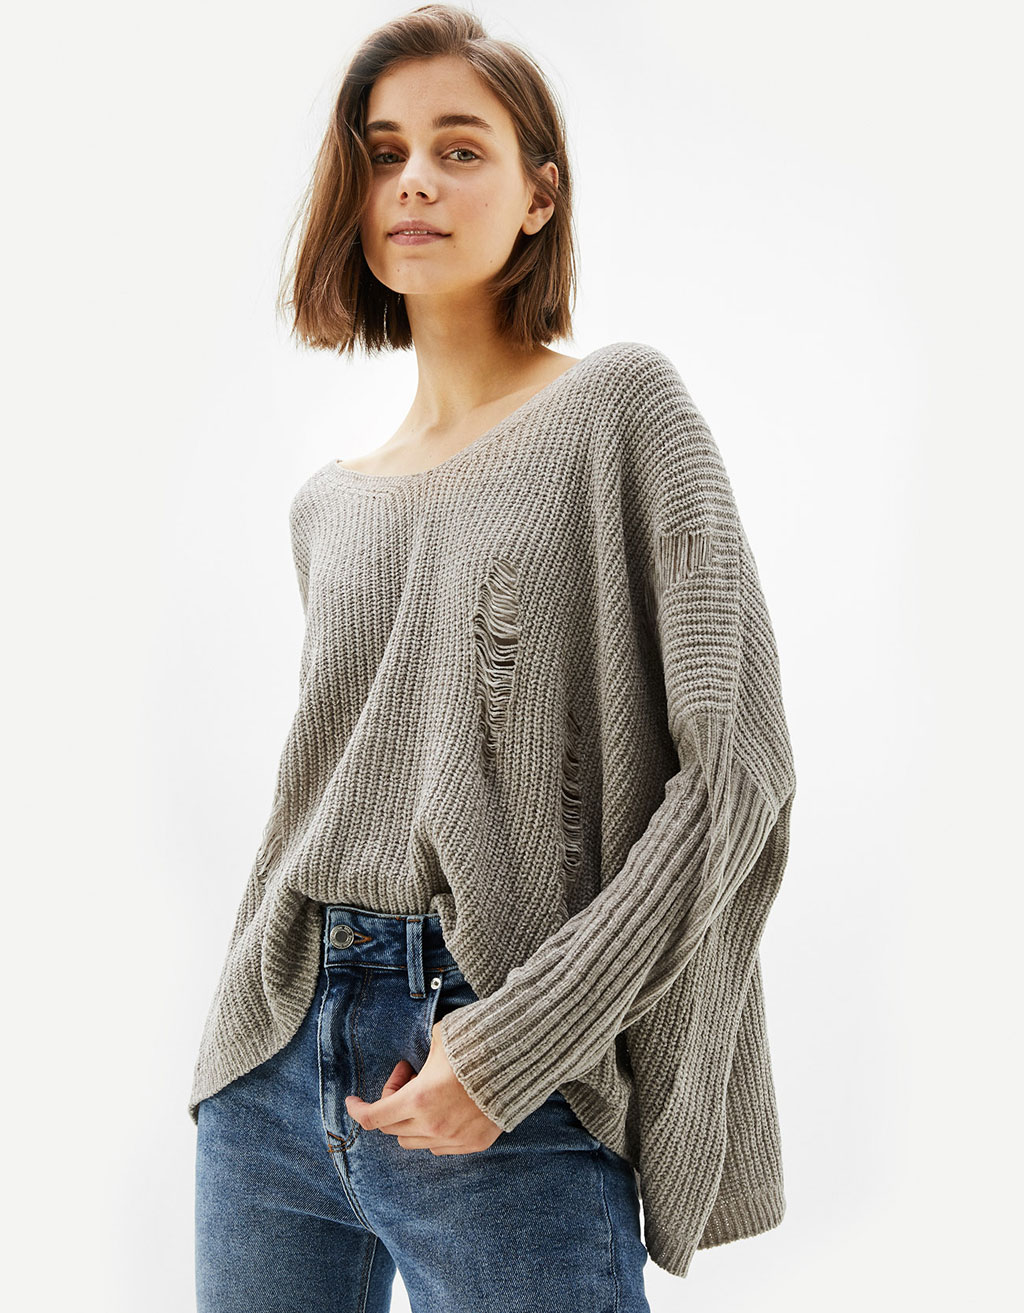 Chenille sweater with rips